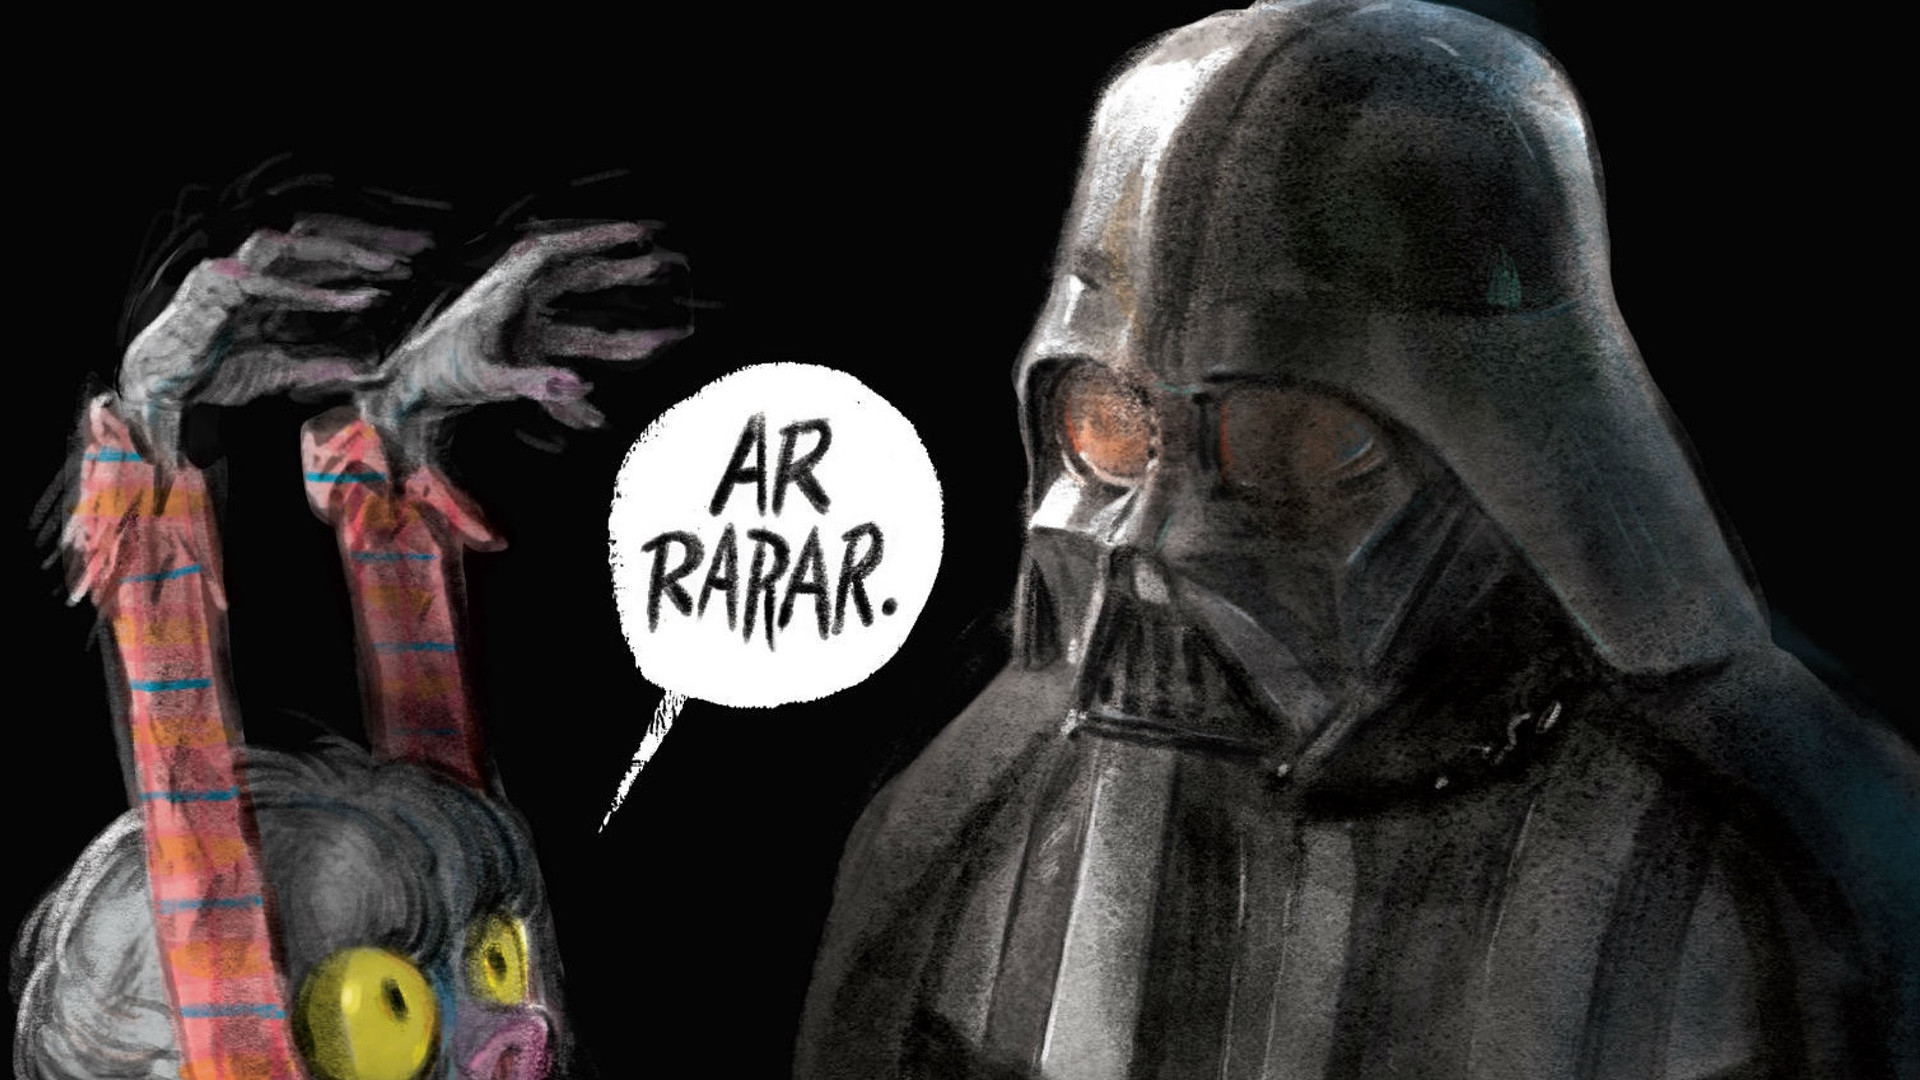 a-new-star-wars-childrens-book-explores-what-darth-vader-is-scared-of-which-isnt-much-social.jpg